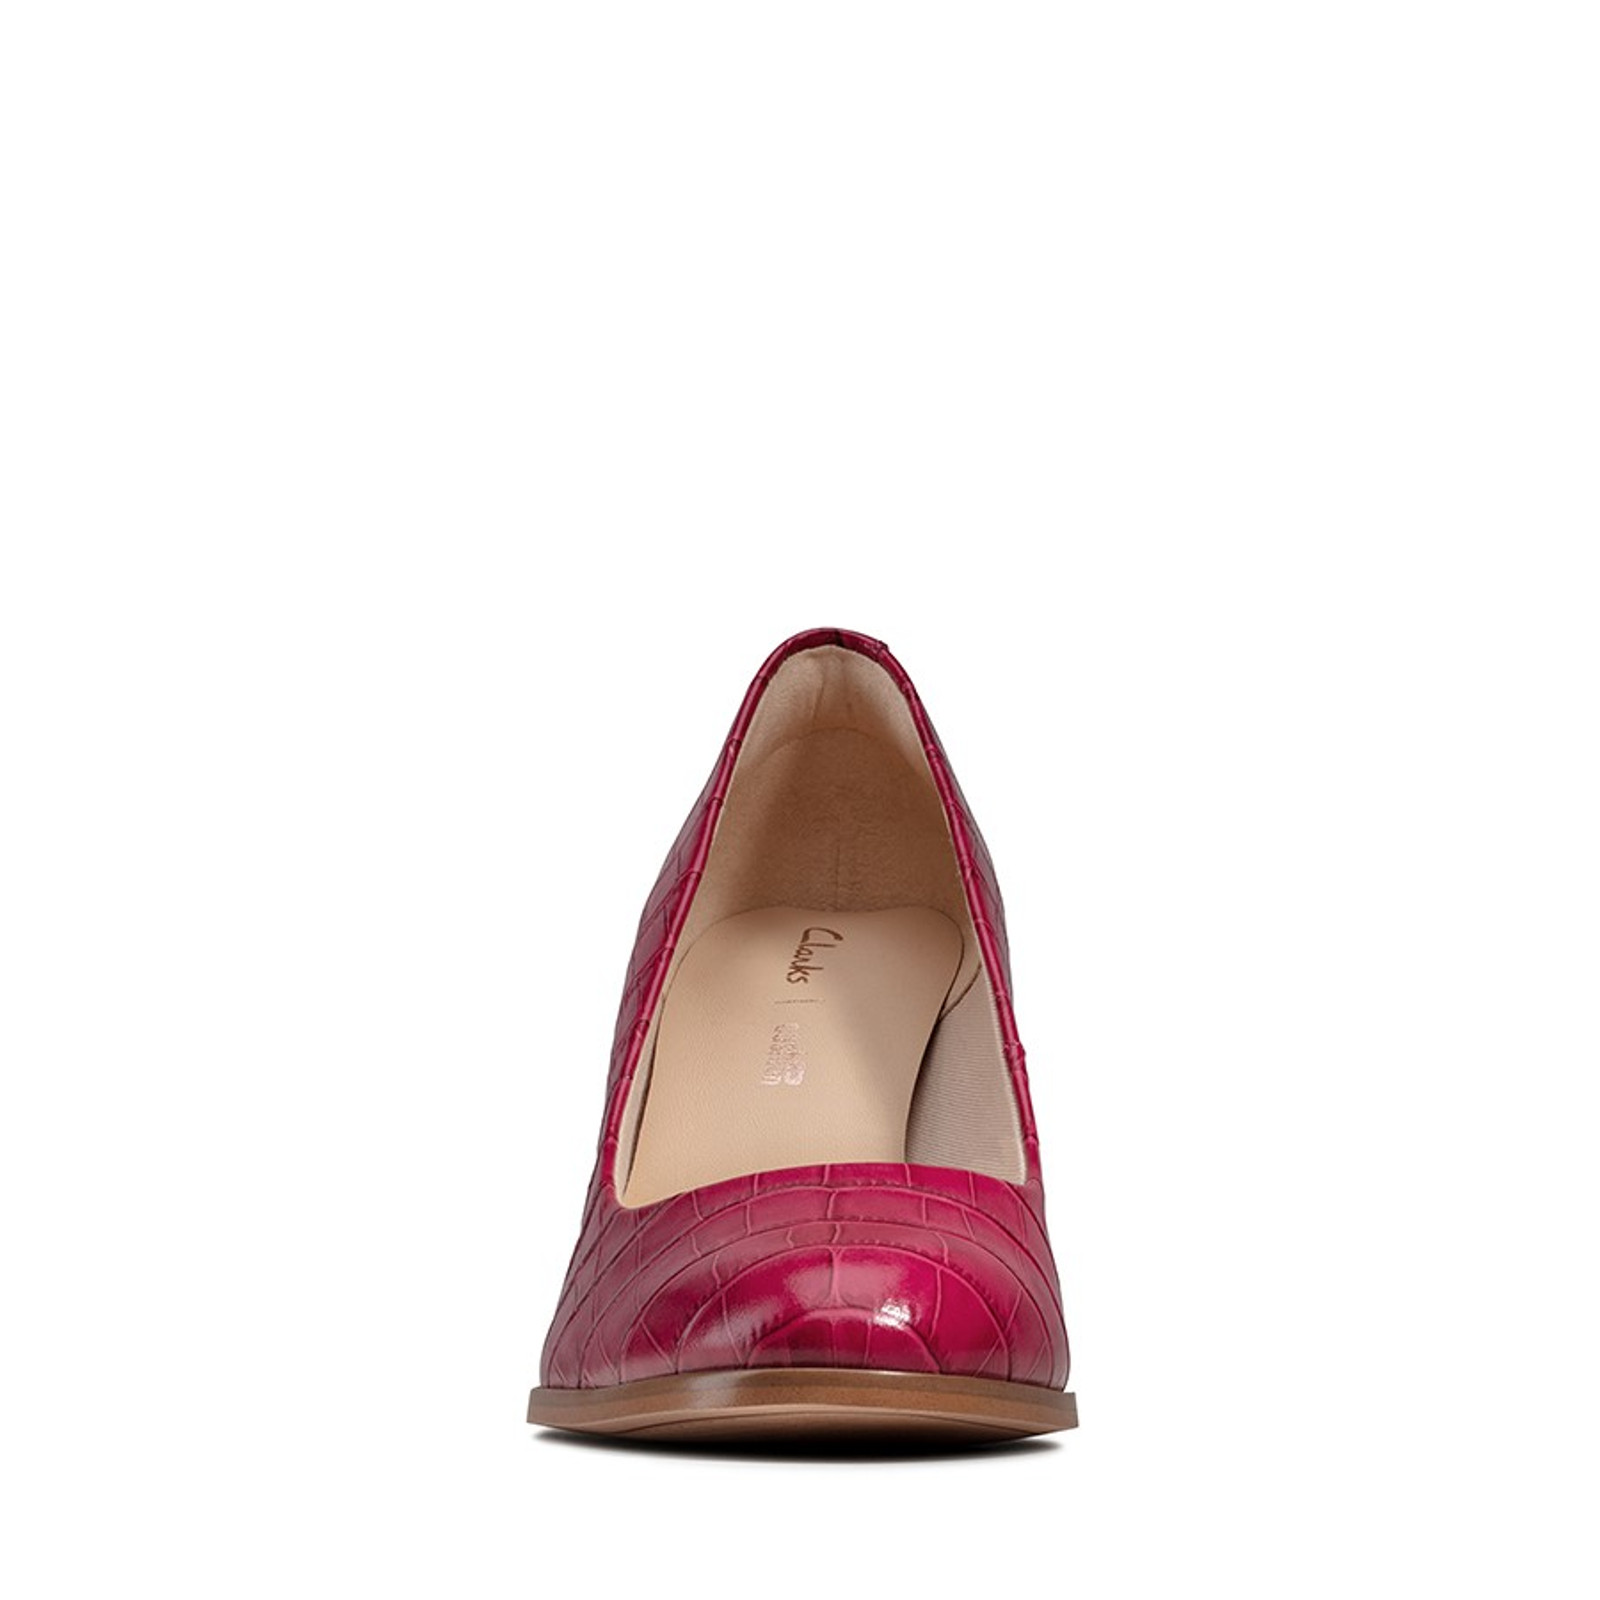 Clarks Womens KAYLIN CARA Pink Leather